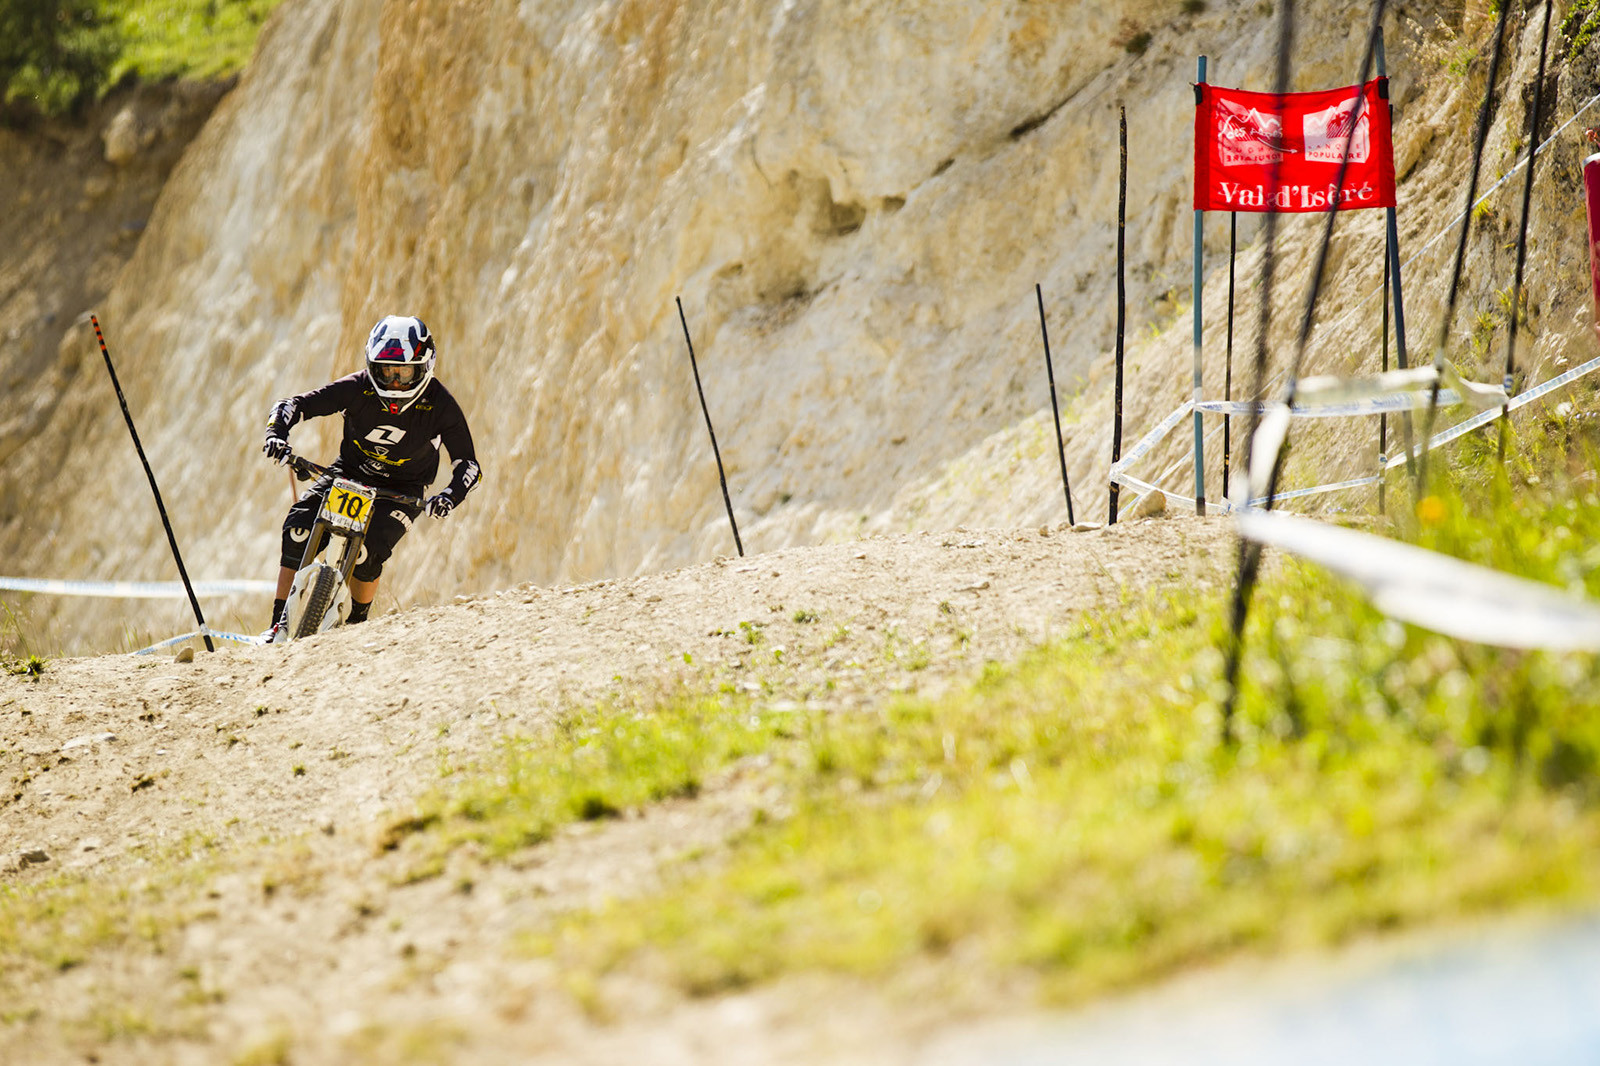 Marc Beaumont, Wide Open at Val d'Isere - 2012 UCI World Cup, Val d'Isere, France, Day 2 - Mountain Biking Pictures - Vital MTB